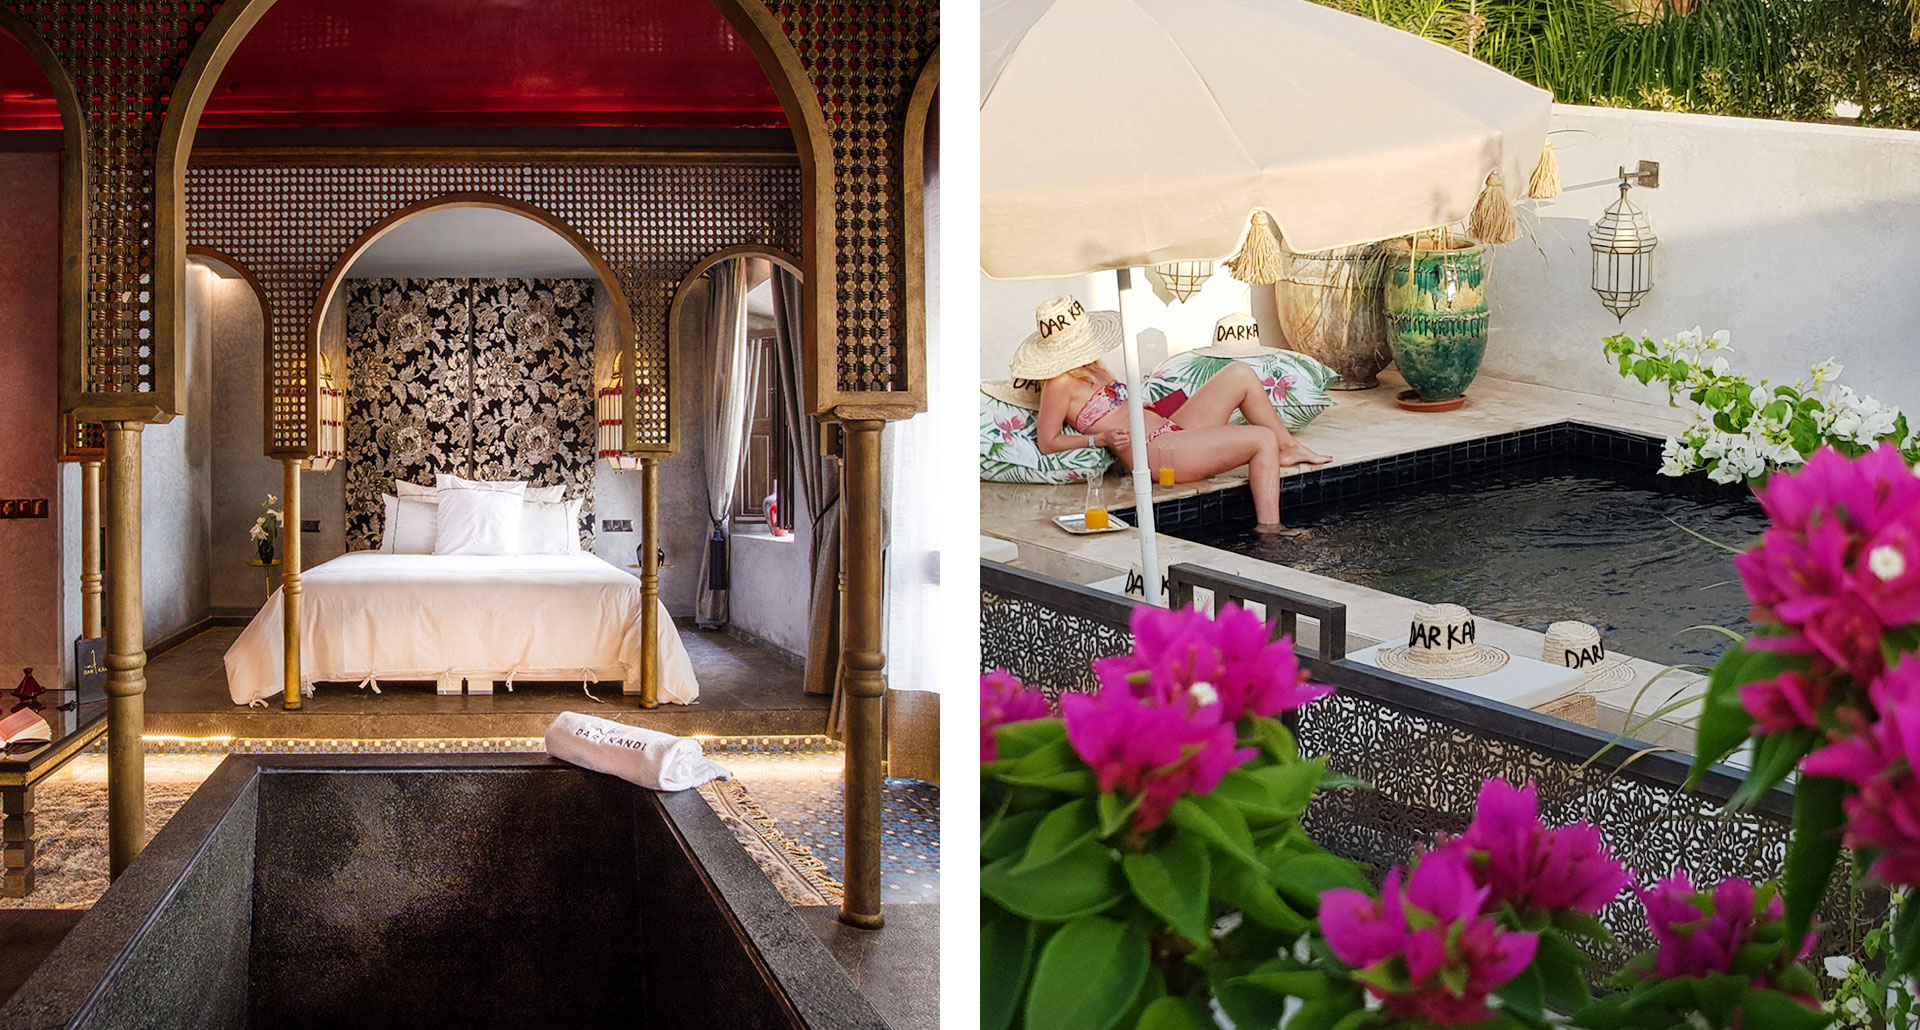 Dar Kandi - boutique hotel in Marrakech